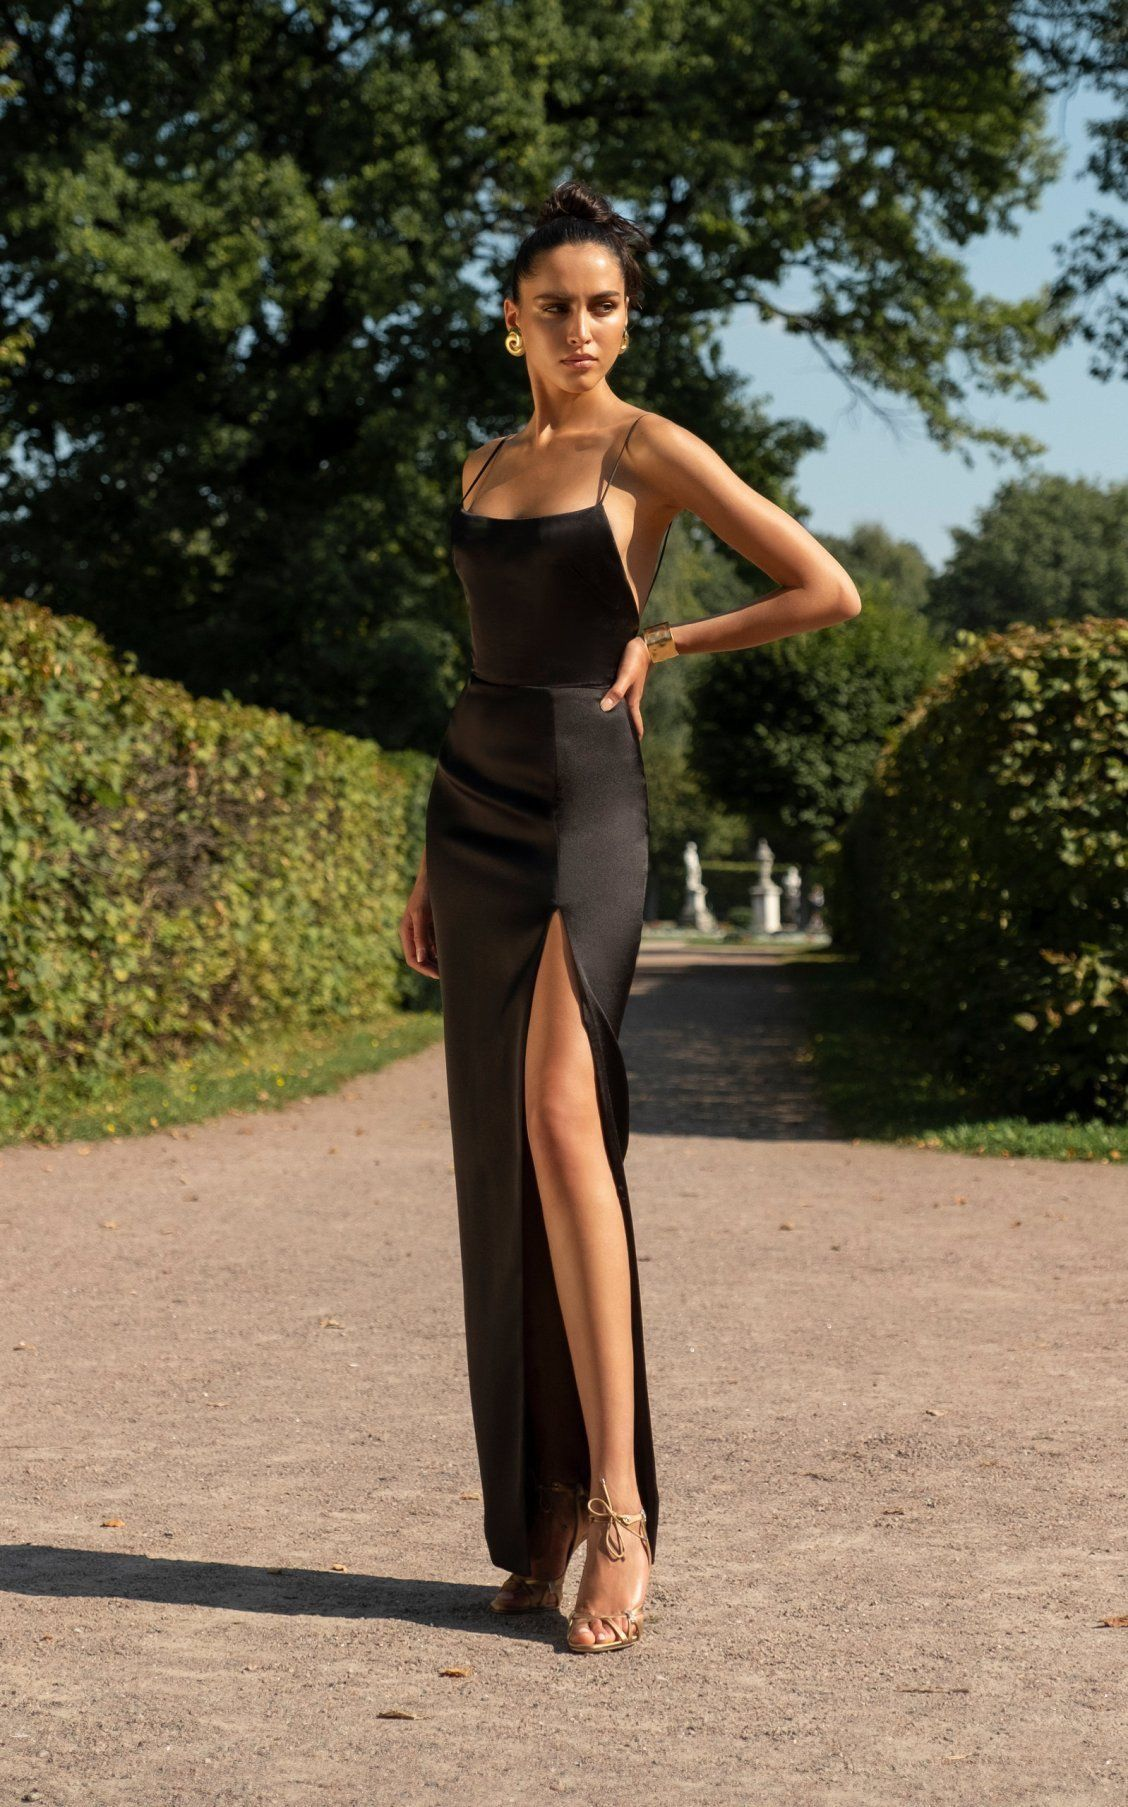 Pin By Layane Soares On Delta Fashion Simple Prom Dress Black Prom Dresses Fashion [ 1807 x 1128 Pixel ]